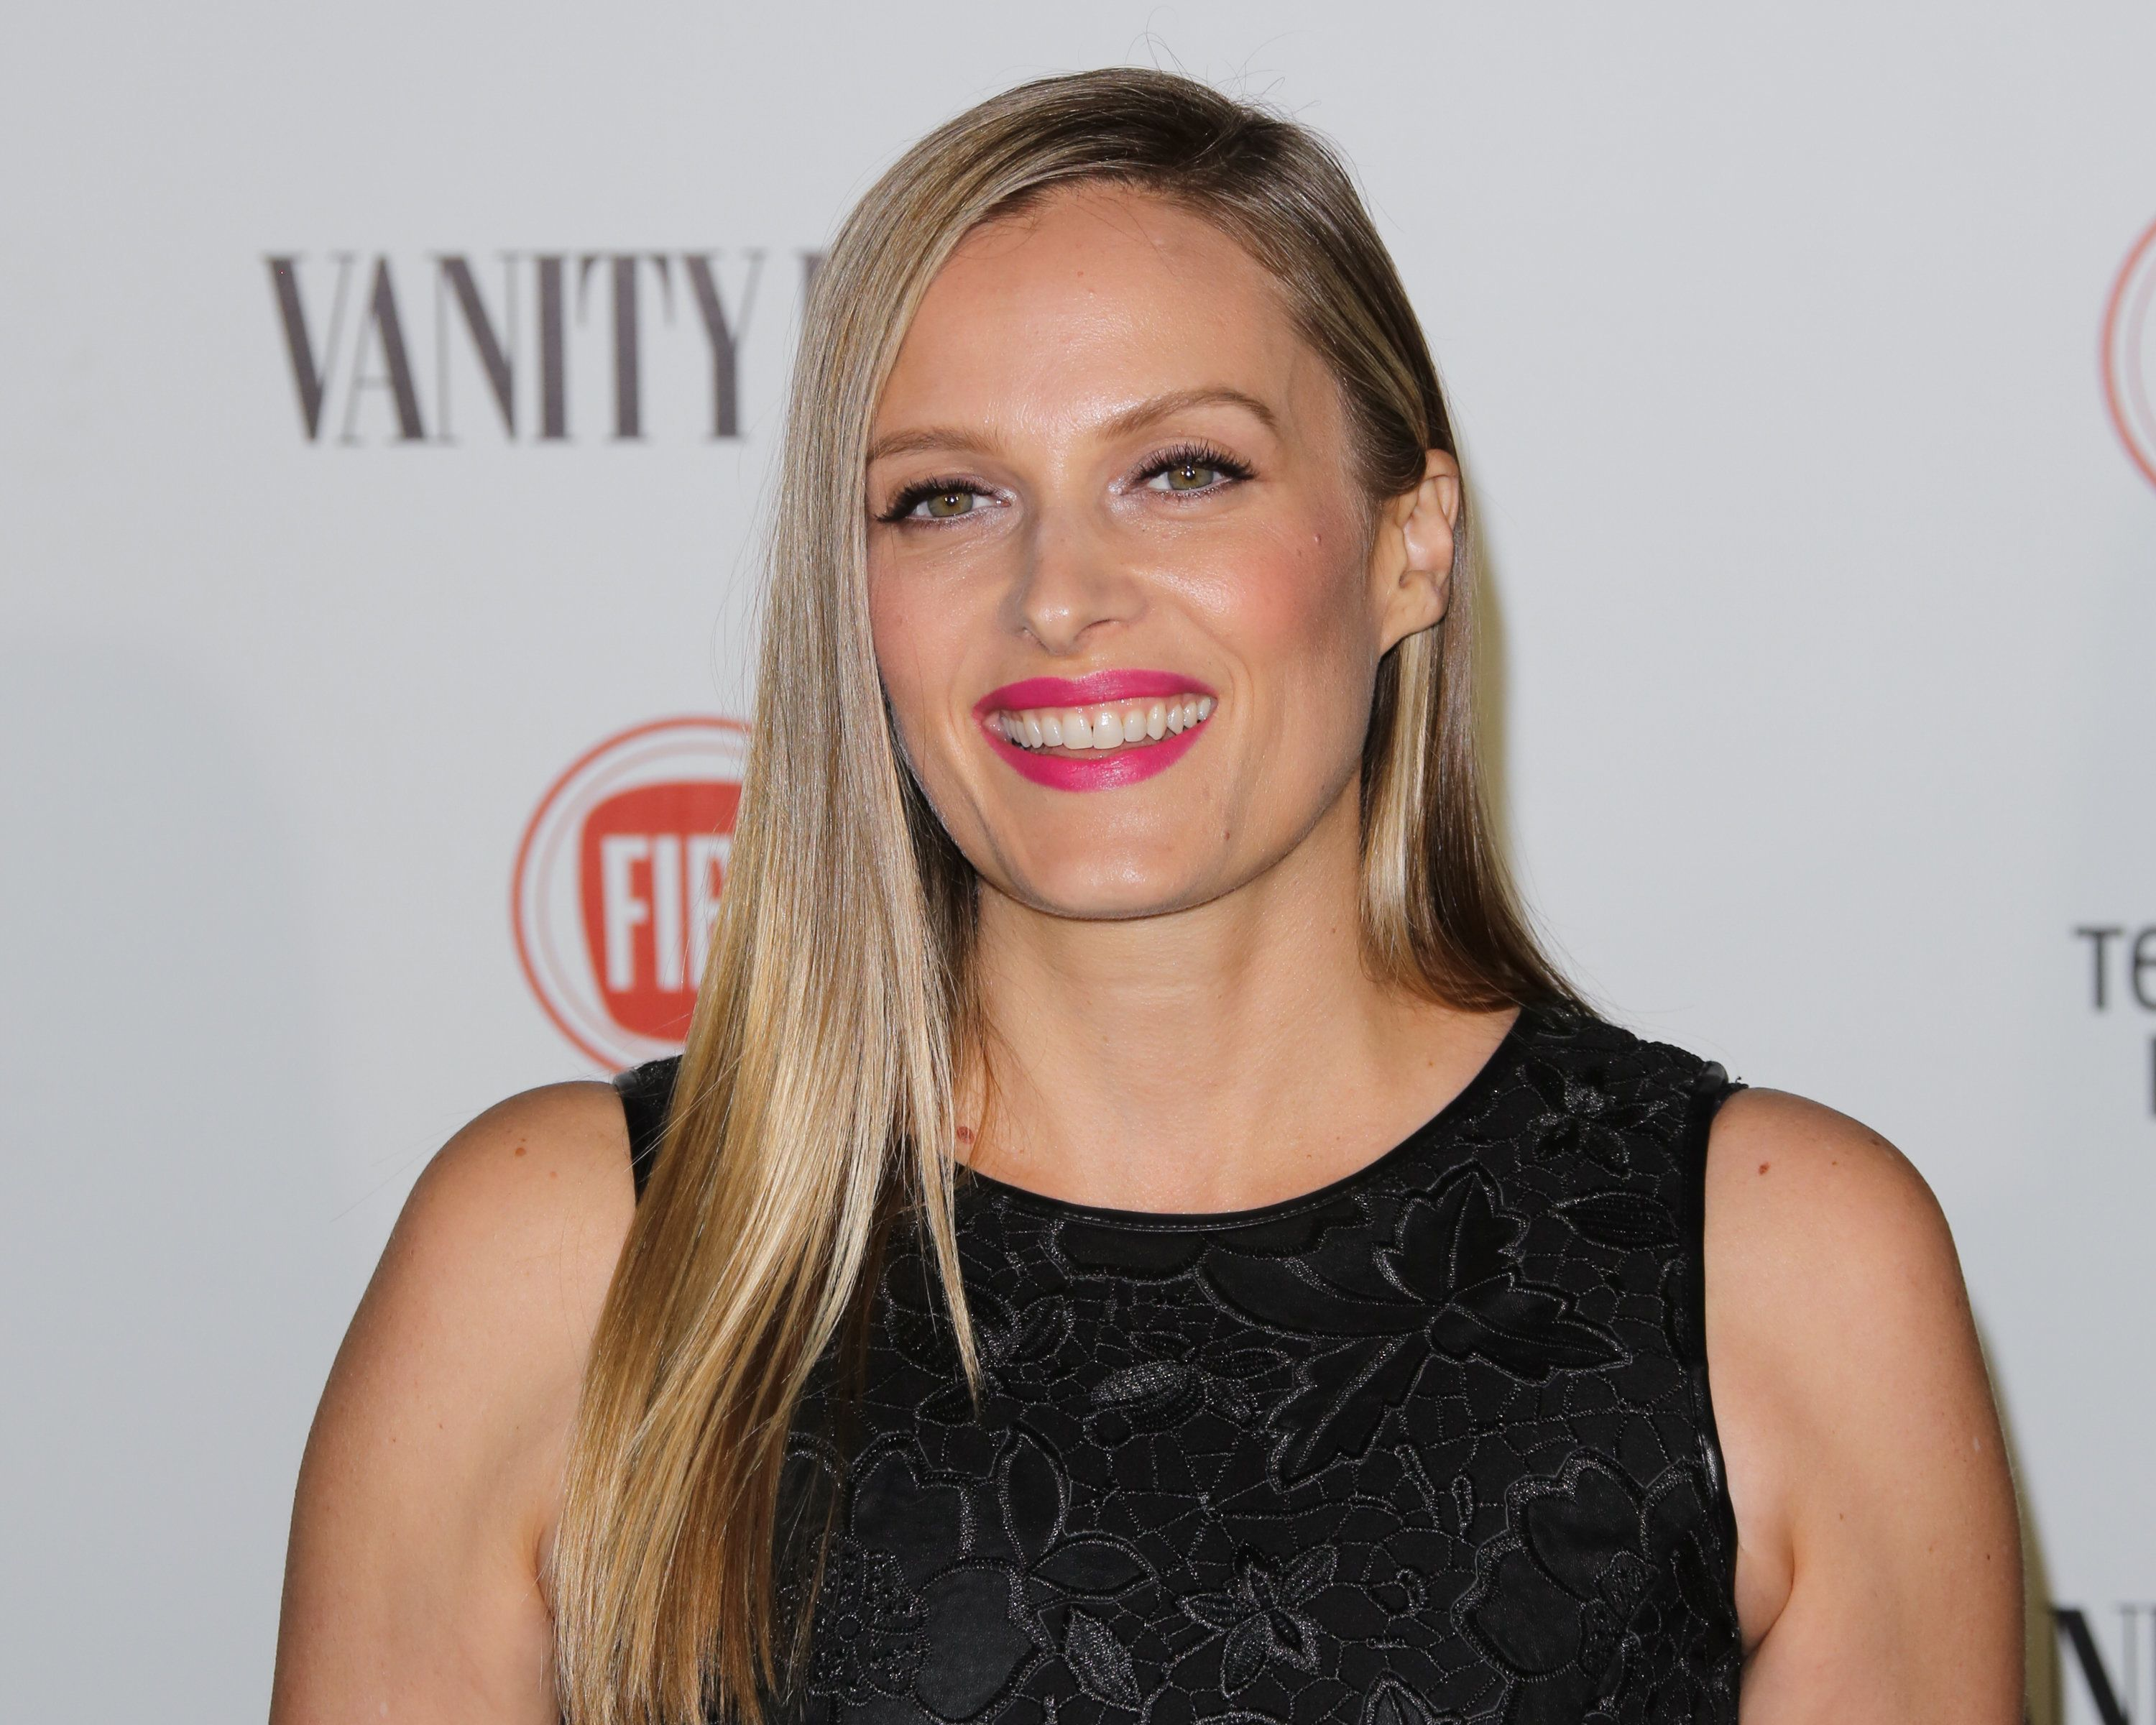 LOS ANGELES, CA - FEBRUARY 17:  Actress Vinessa Shaw attends the Vanity Fair and Fiat's toast to 'Young Hollywood' in support of Terrence Higgins Trust at No Vacancy on February 17, 2015 in Los Angeles, California.  (Photo by Paul Archuleta/FilmMagic)